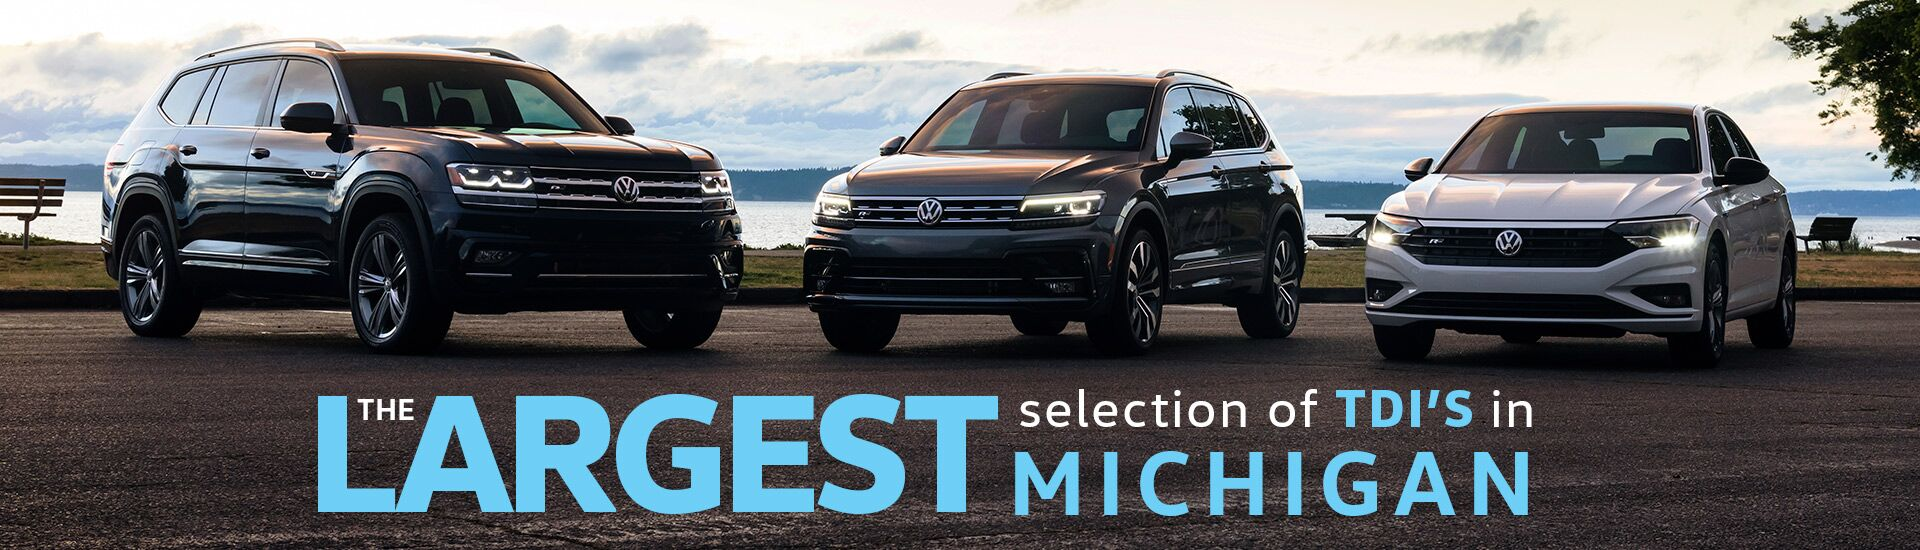 Largest TDI Selection in Michigan